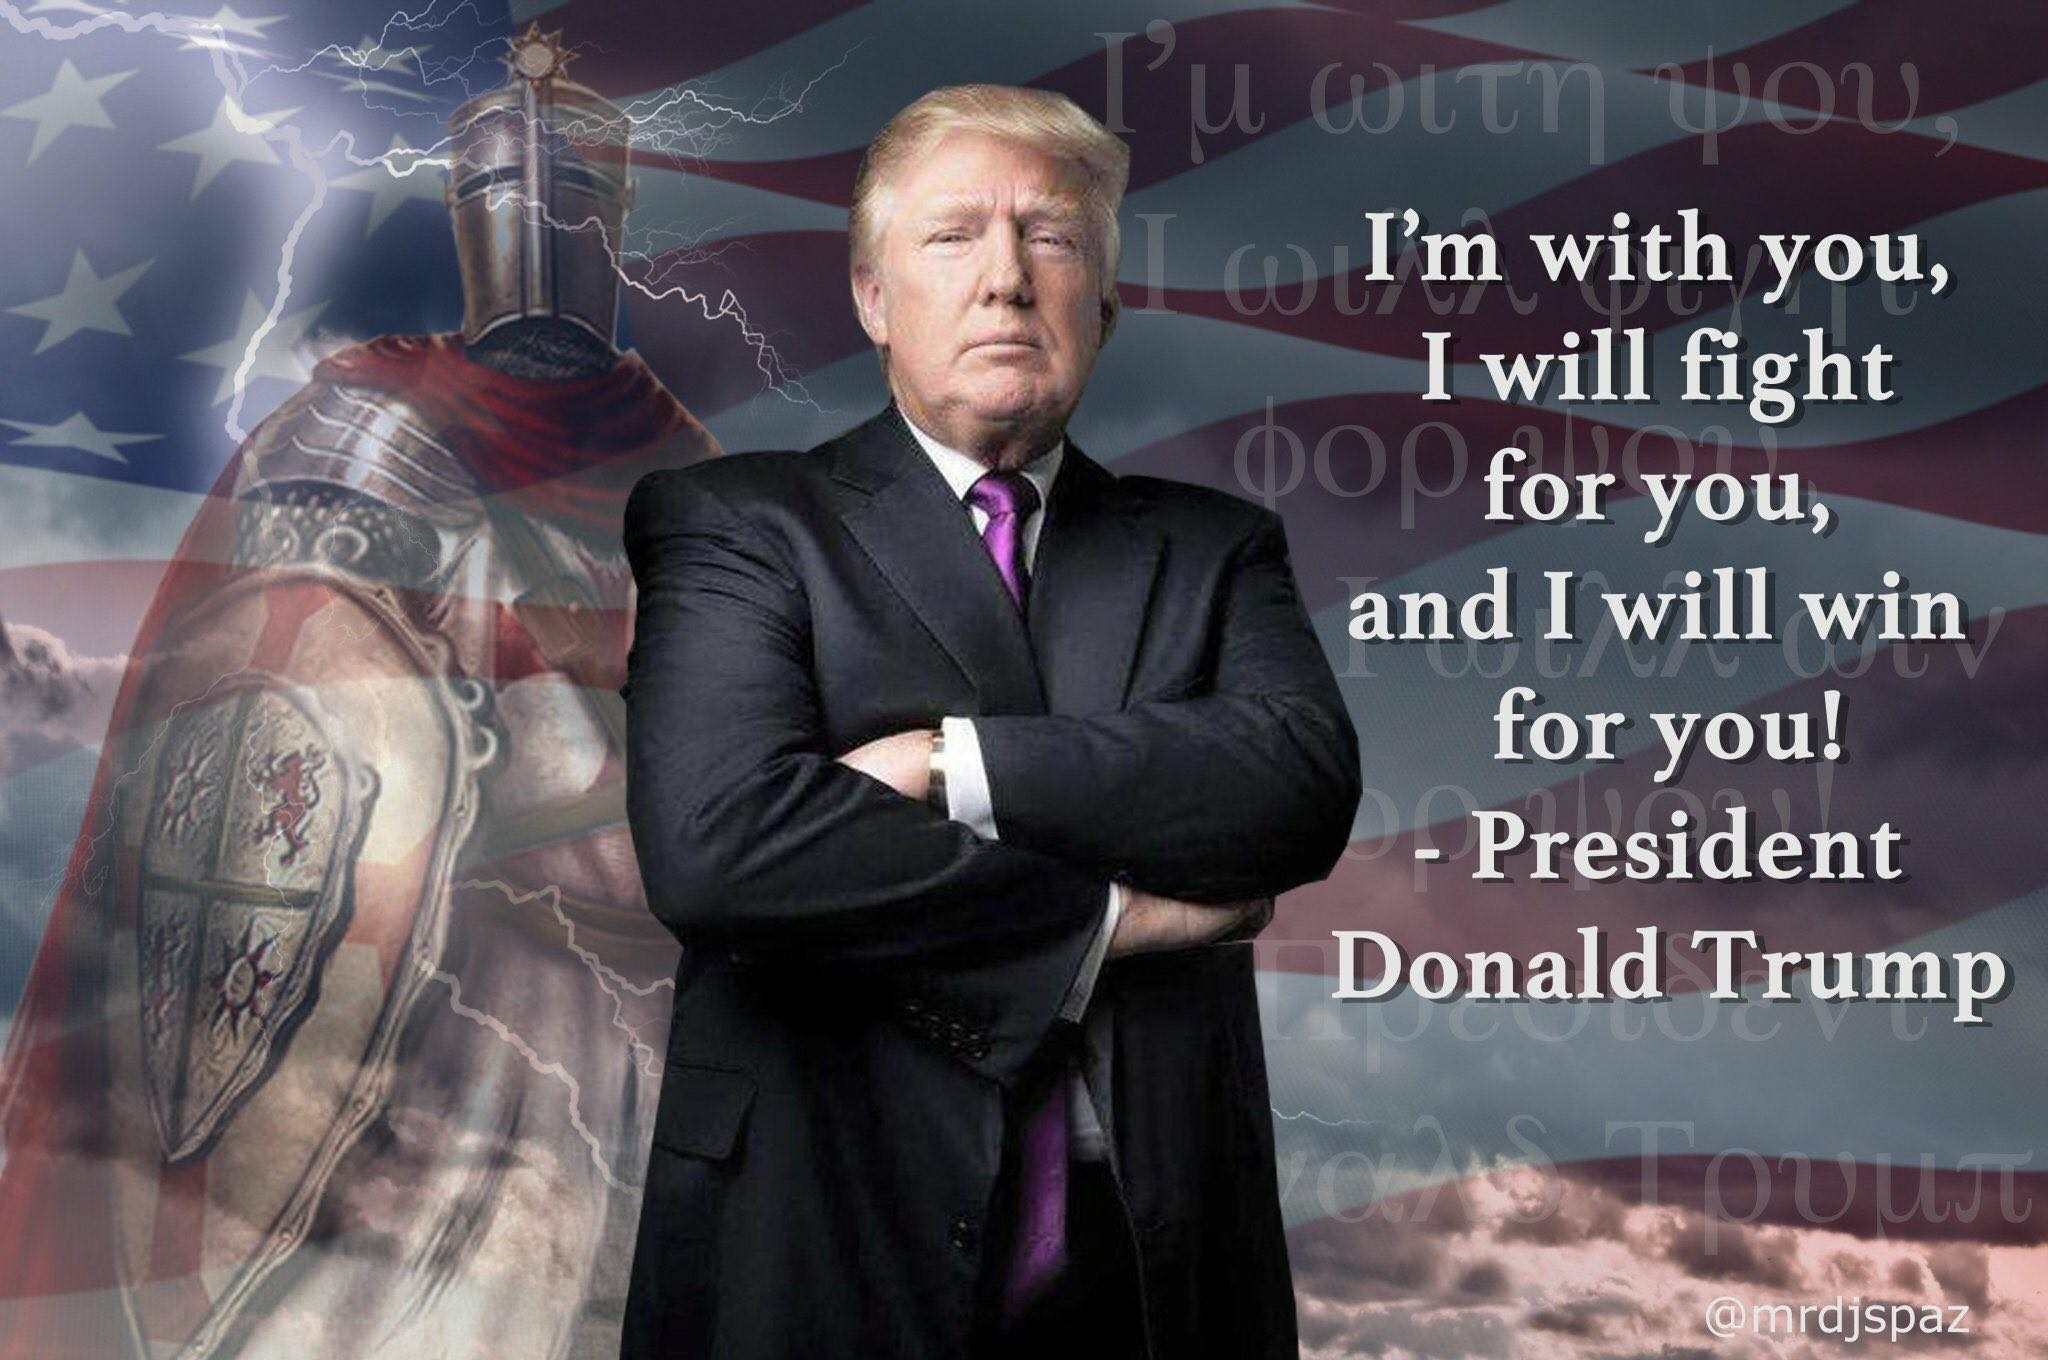 the election was stolen donald j trump is the president